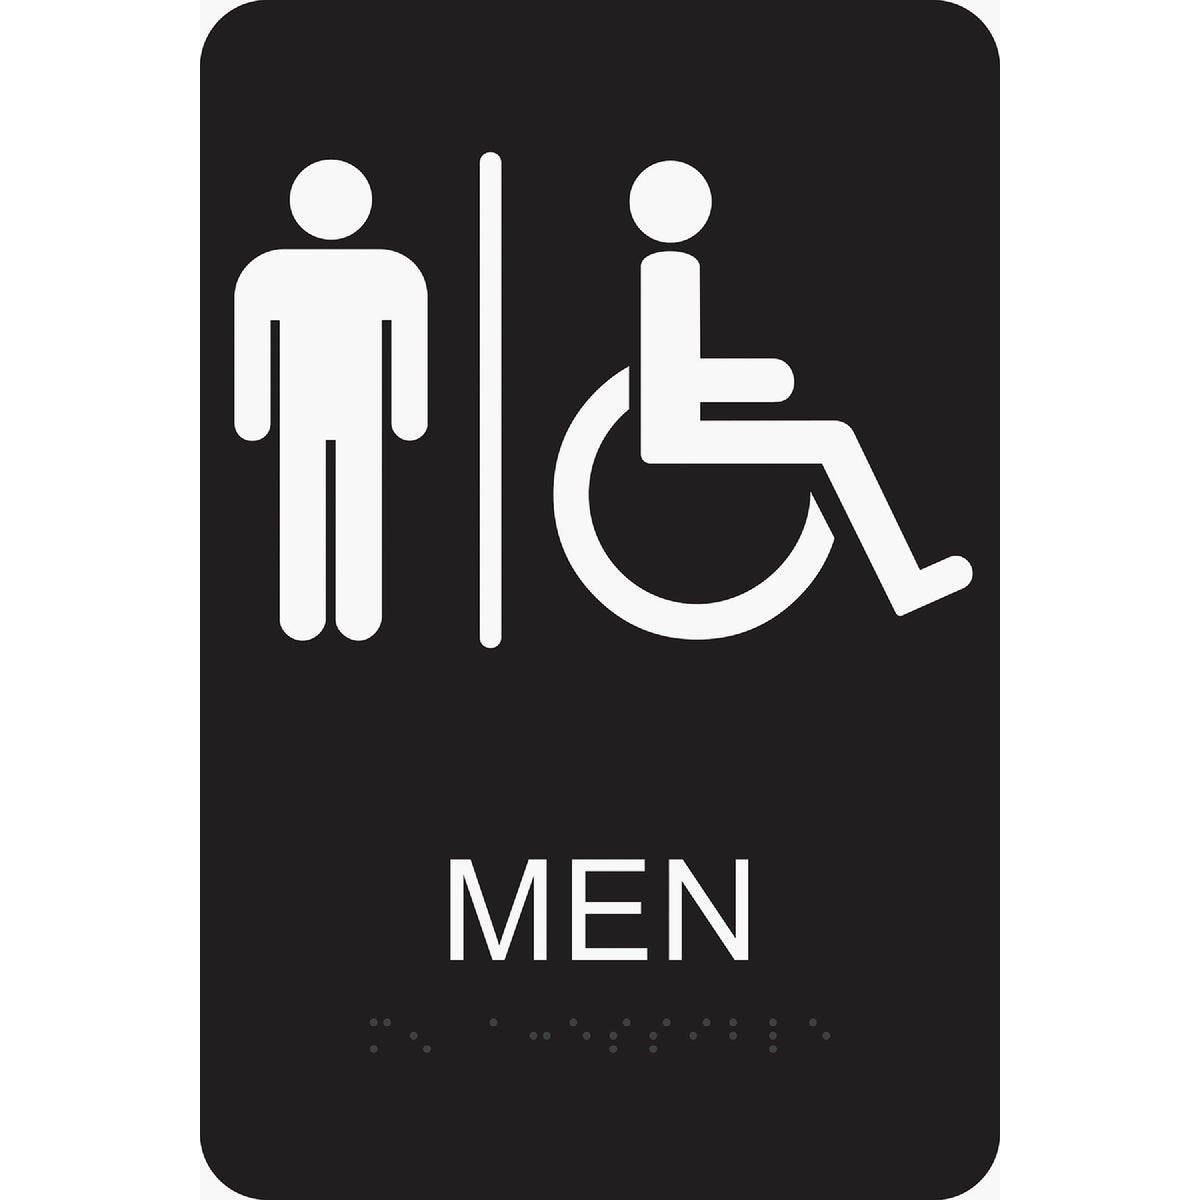 6X9 BRAILLE MEN/HND SIGN - DB-1 by Hy Ko Prods Co